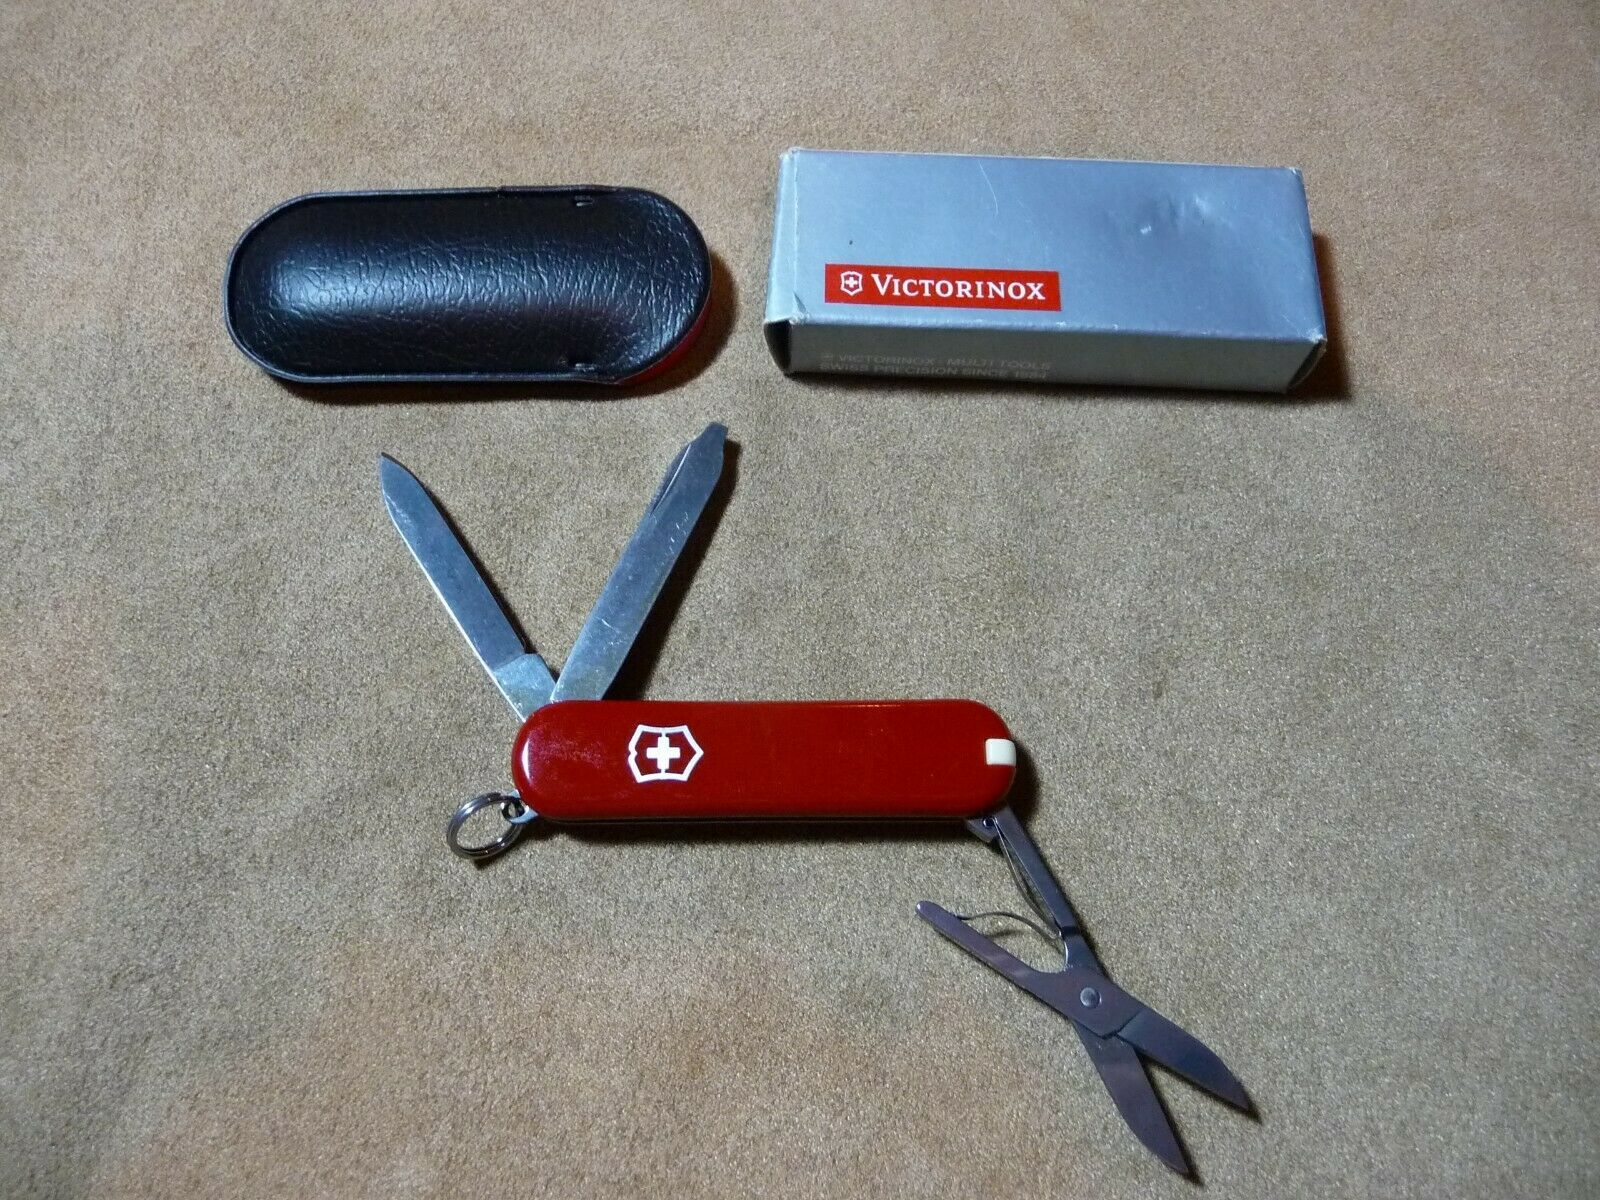 NOS Victorinox Swisss Army Rostfrei Folding Knife Case - 5 Stainless Tools - $10.00